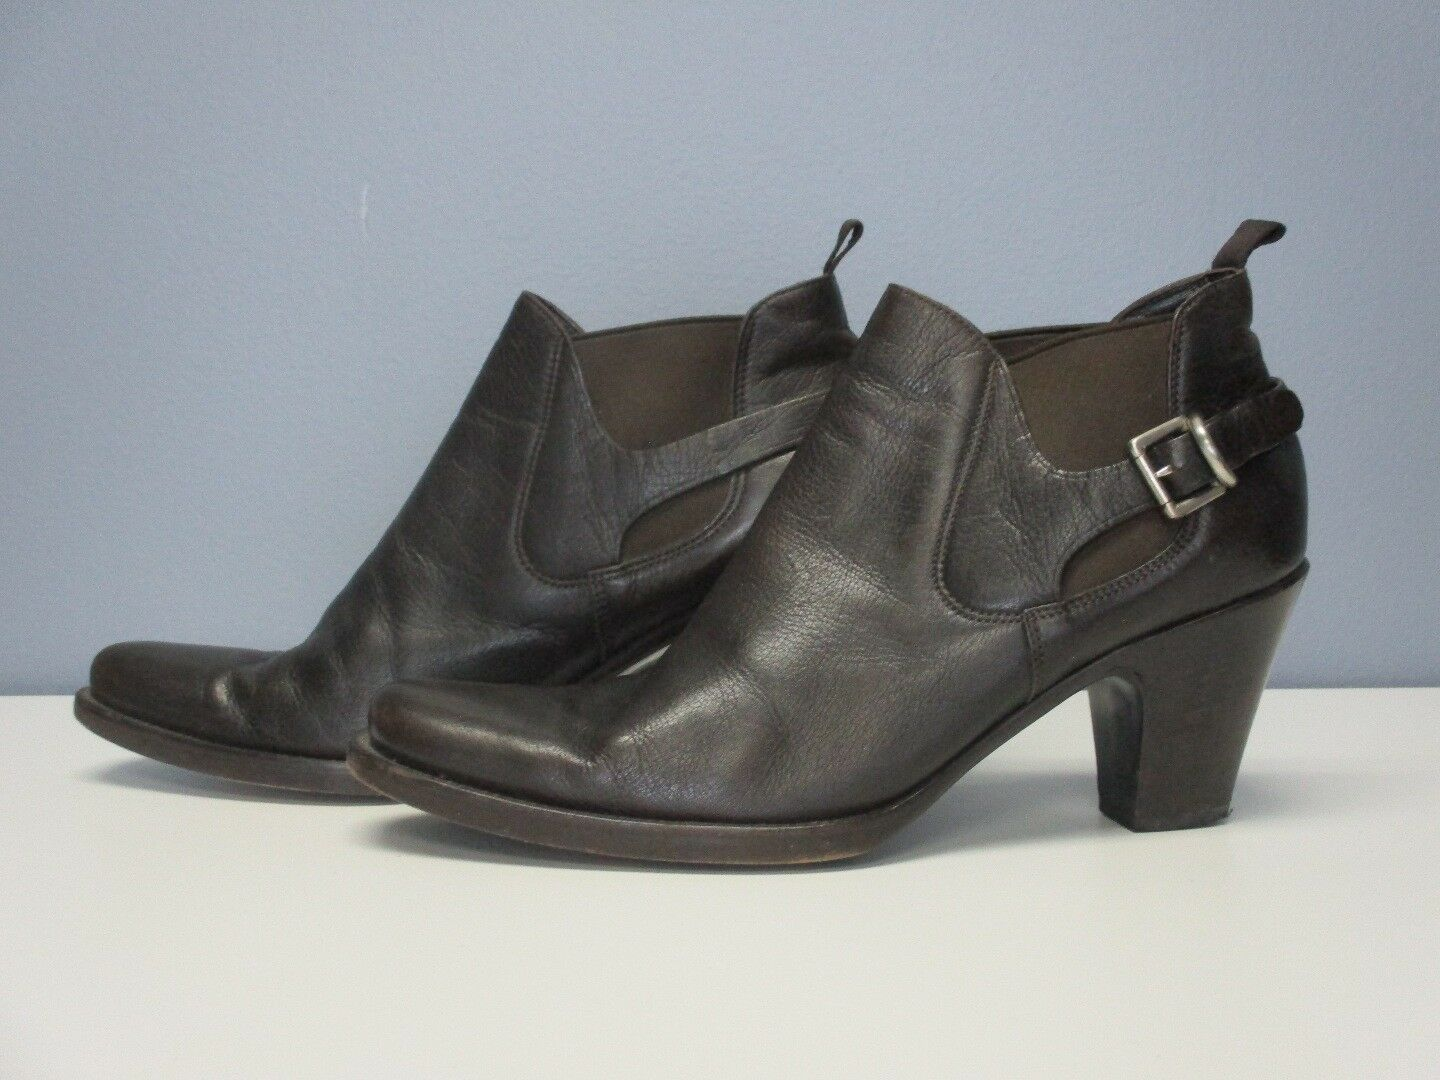 PRADA Dark Brown Leather Buckle Detail Pull On Casual Ankle Booties Sz 39.5 4359